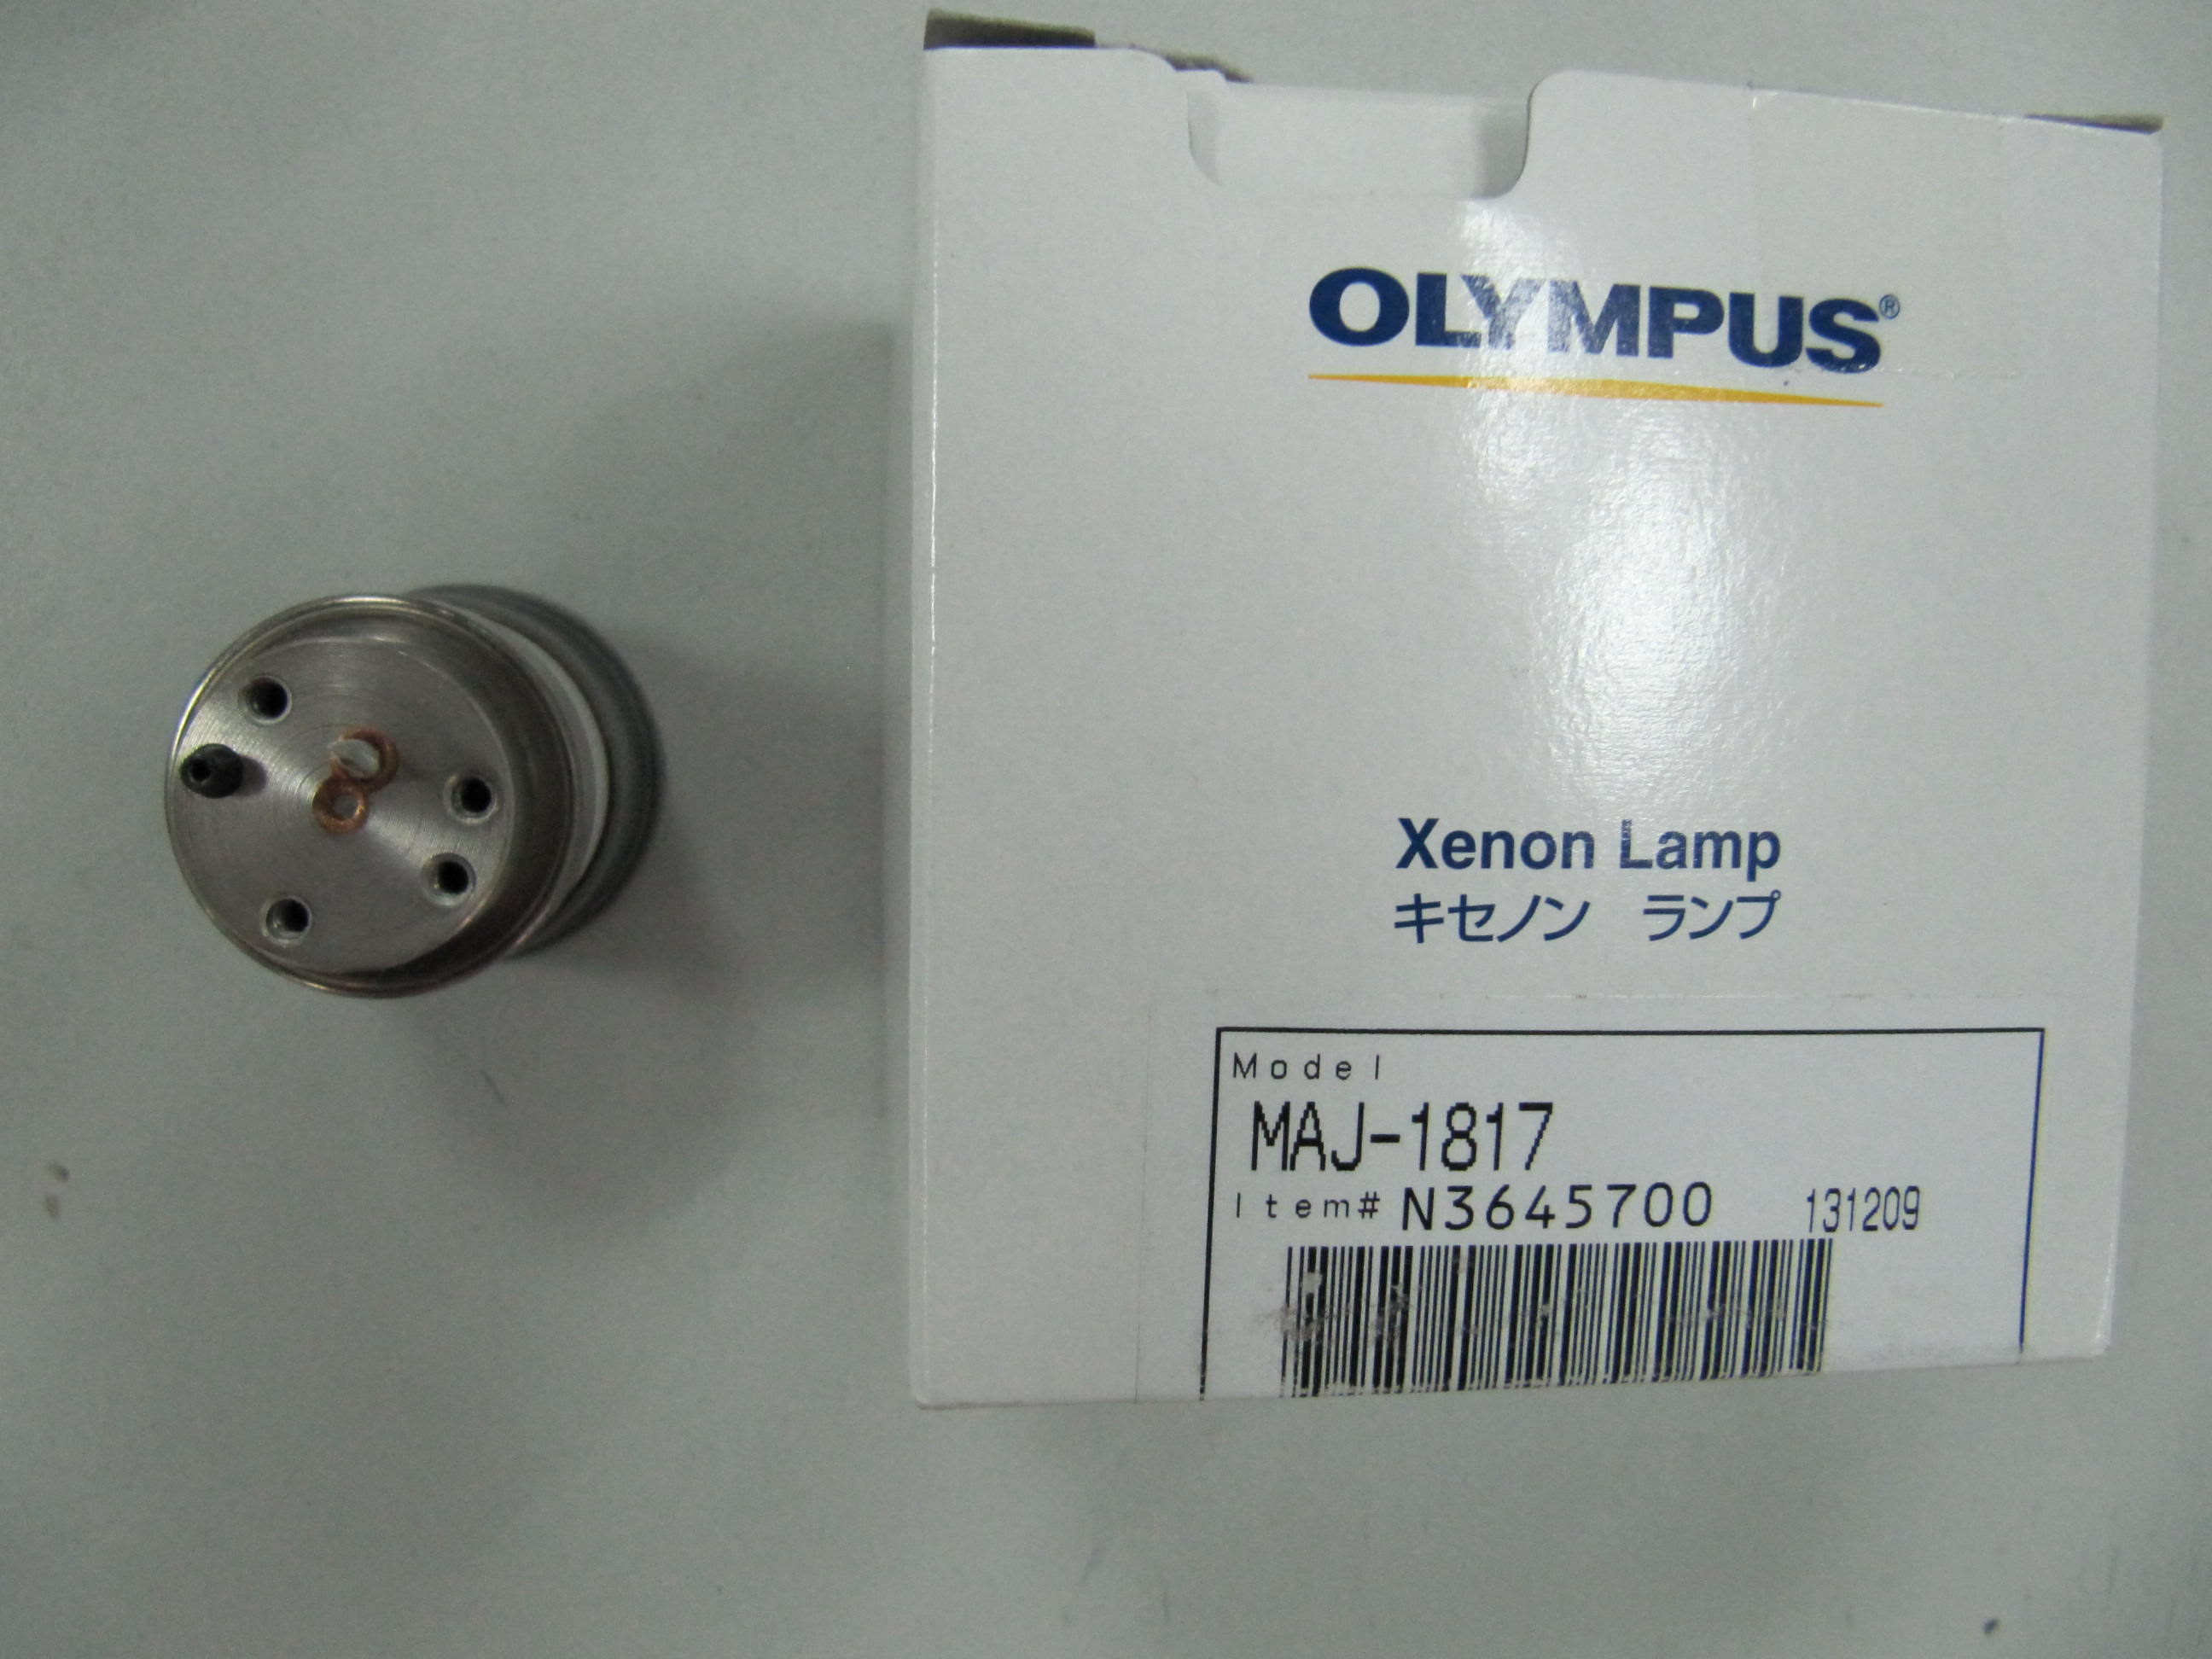 Olympus MAJ-1817 OEM Xenon Lamp for CLV190 (sold out)